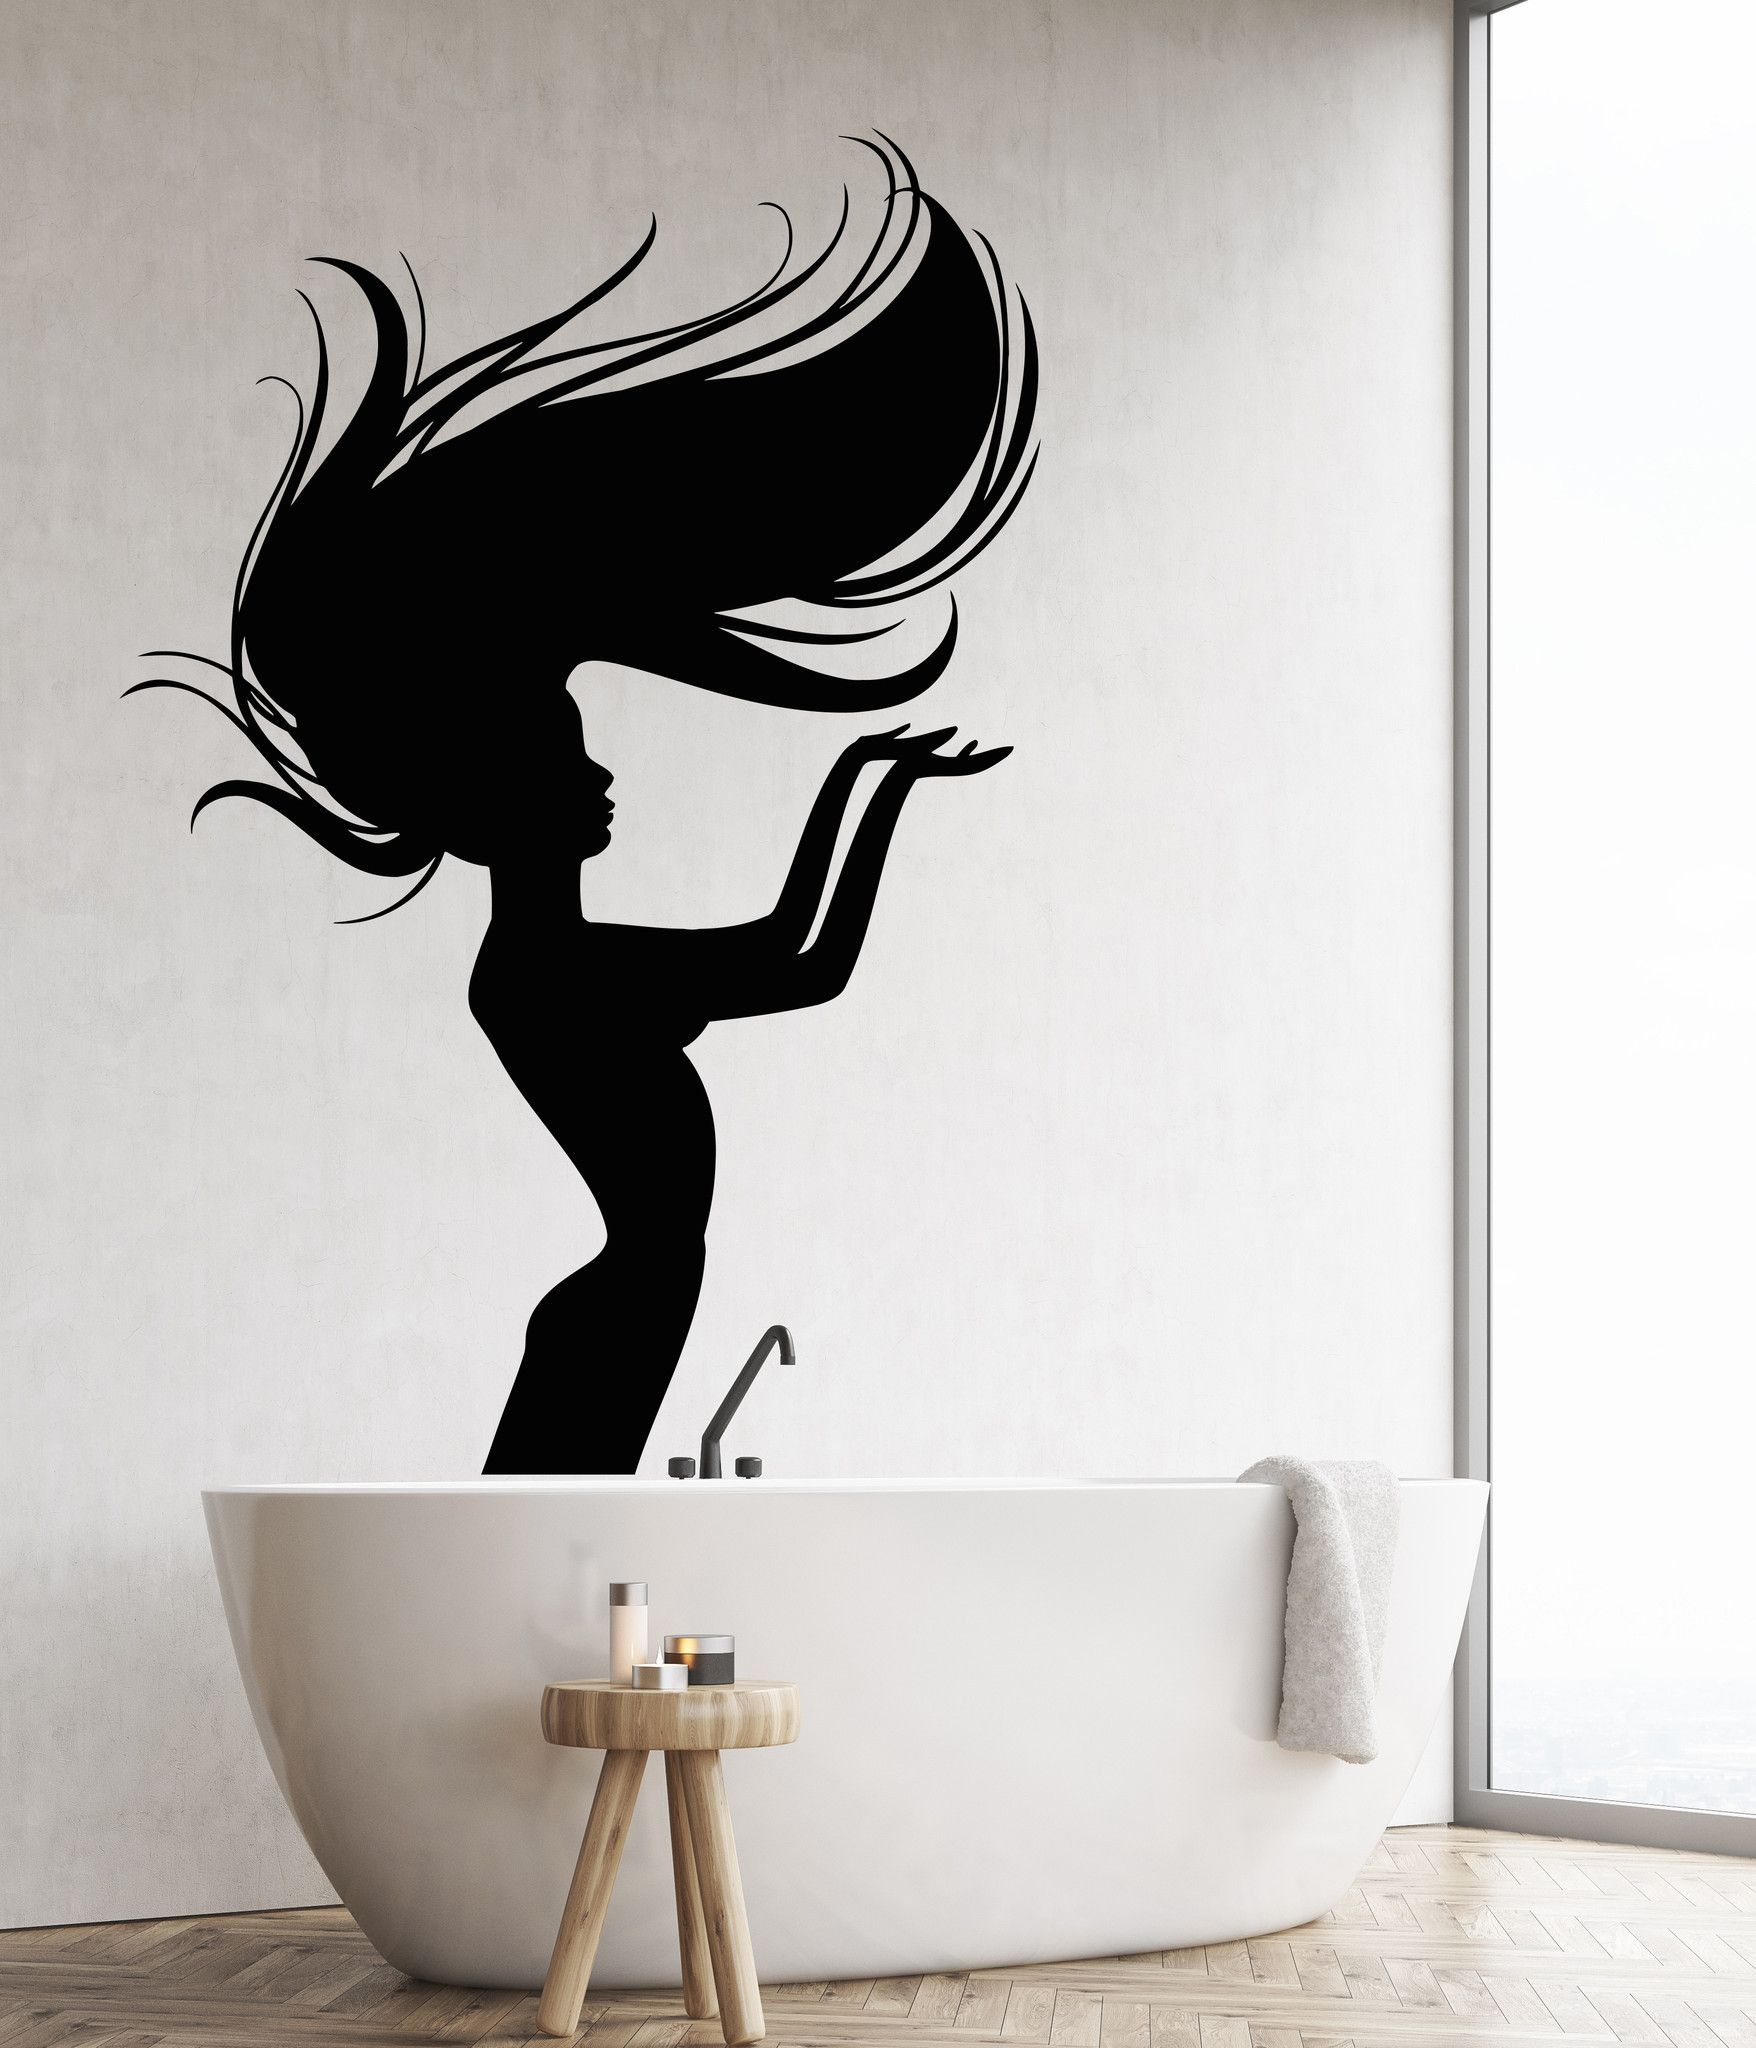 Vinyl Wall Decal Naked Girl Mermaid Nymph Art Decor For